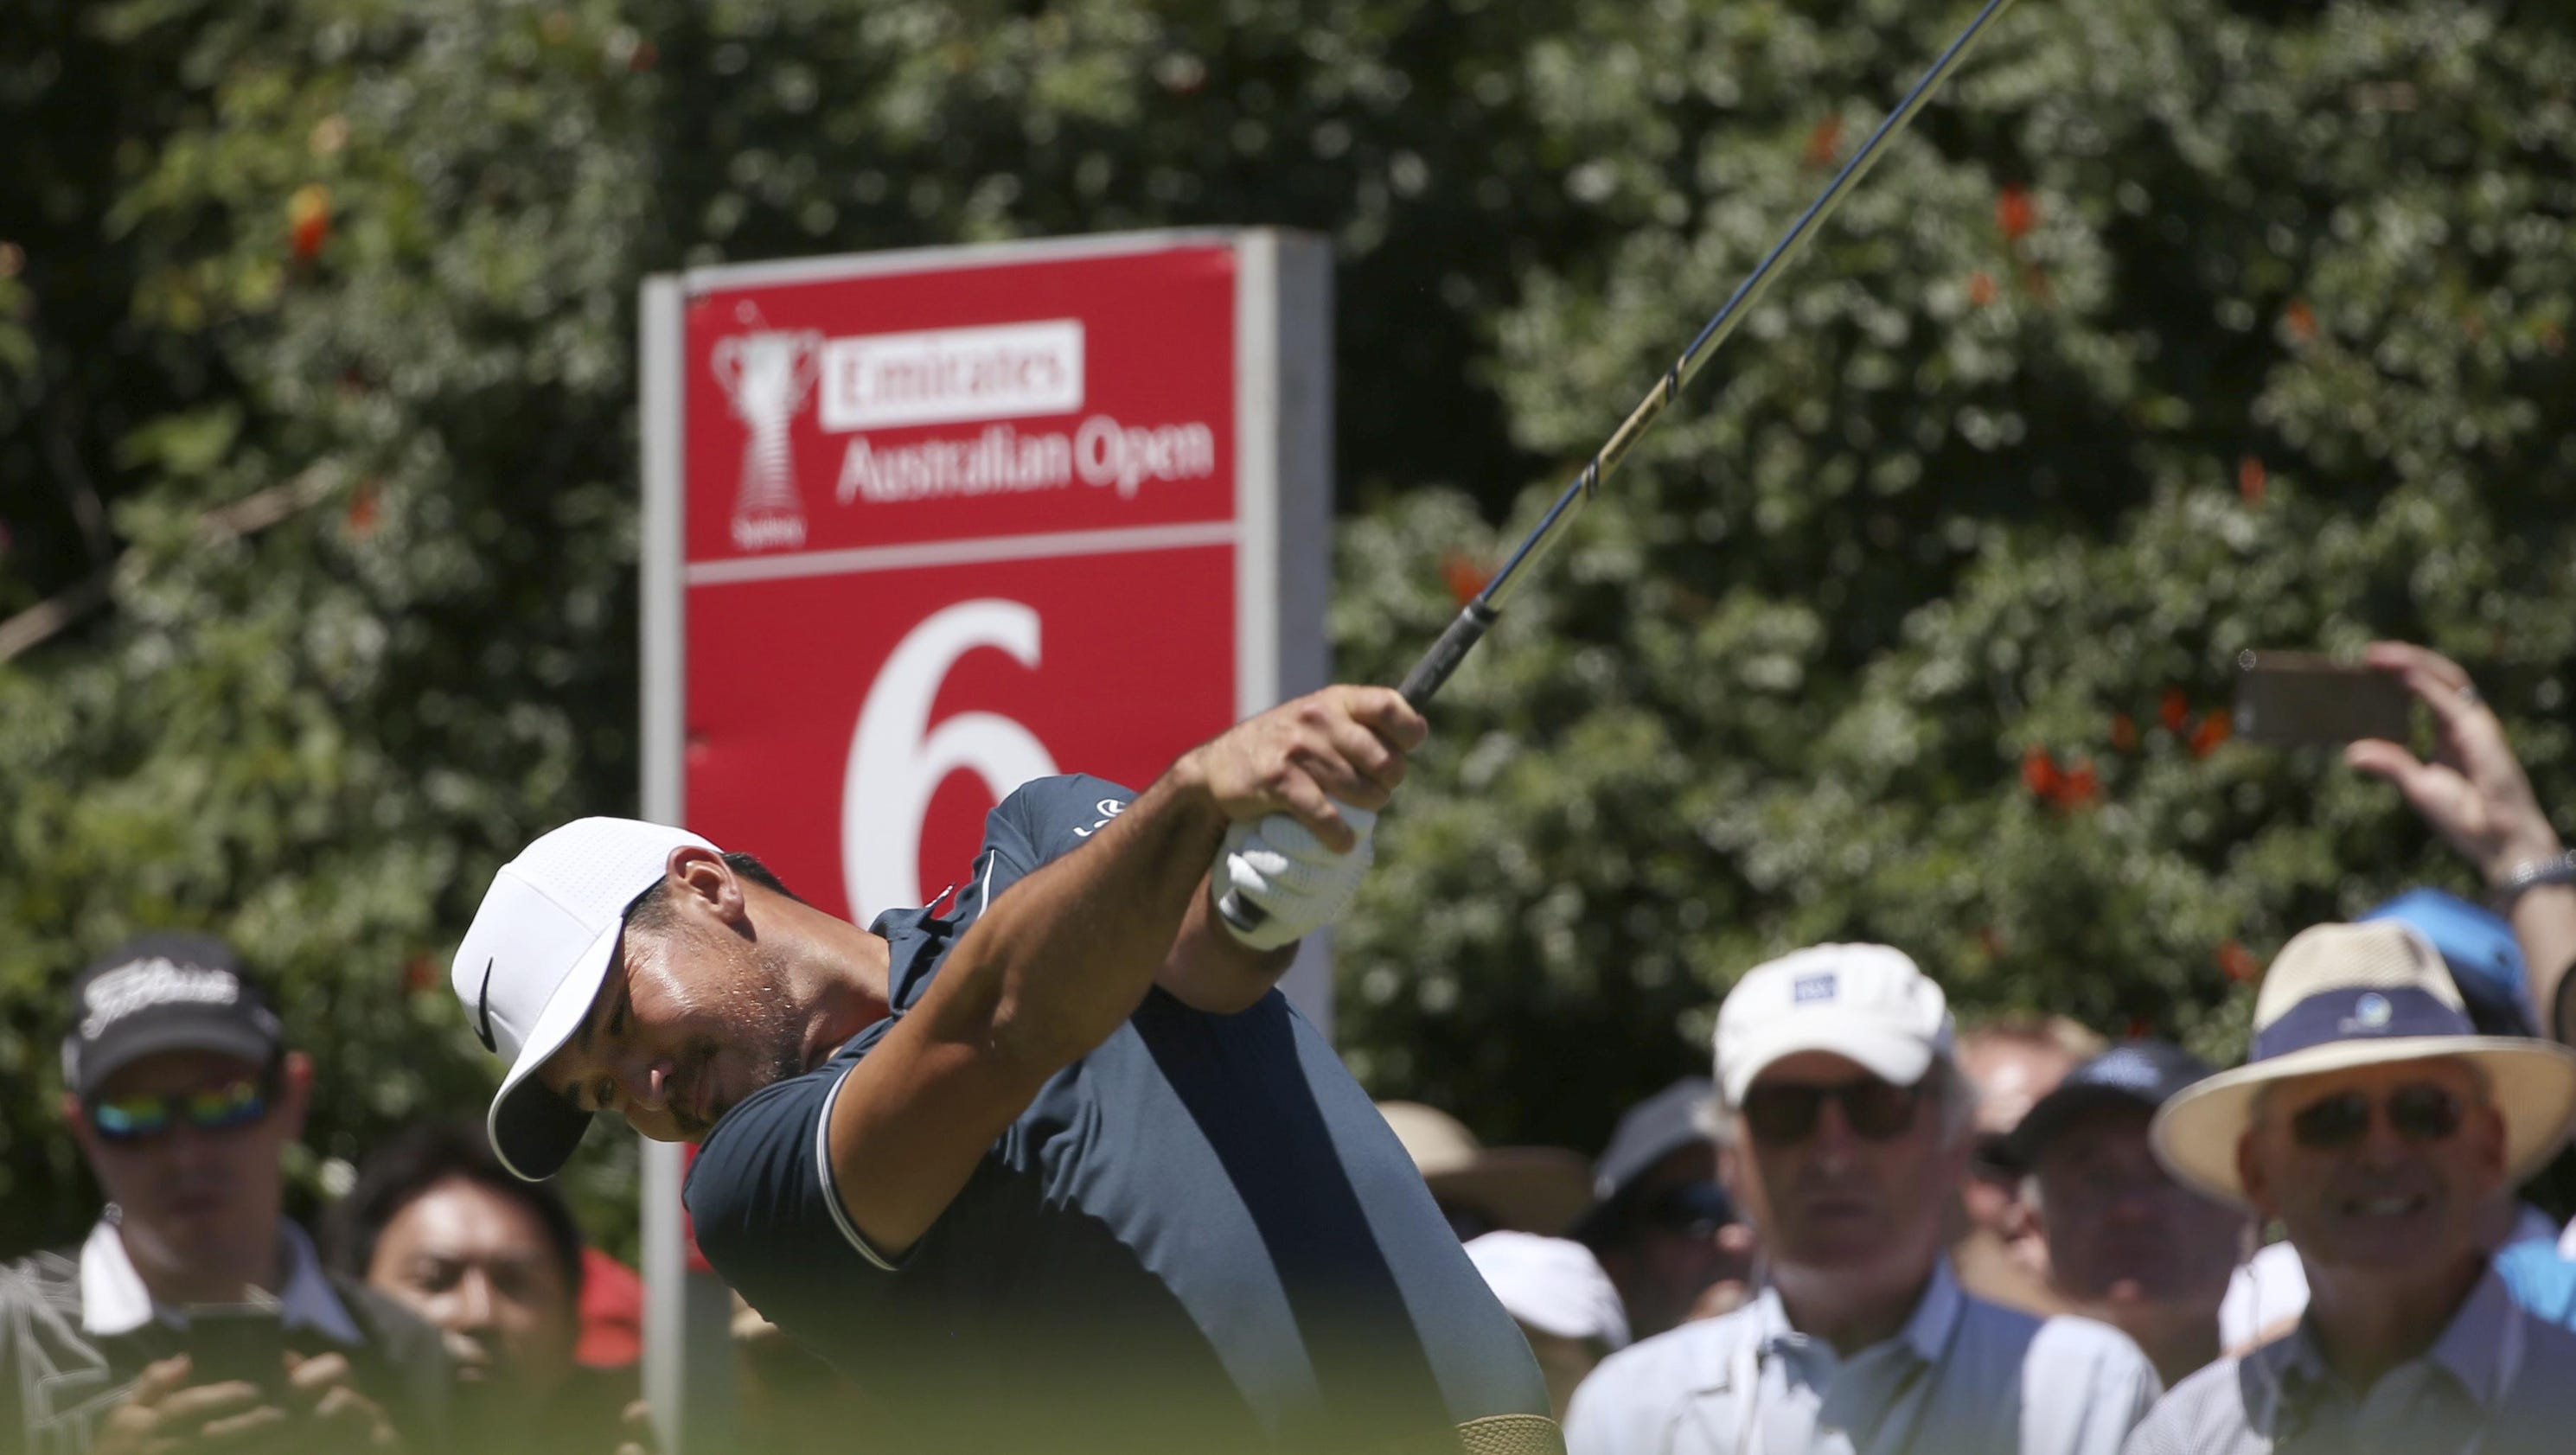 89ebc2ab648 Sydney – Jason Day is prepared for a pressure-filled final round at the  Australian Open on Sunday. Day moved into position for his first Australian  Open ...